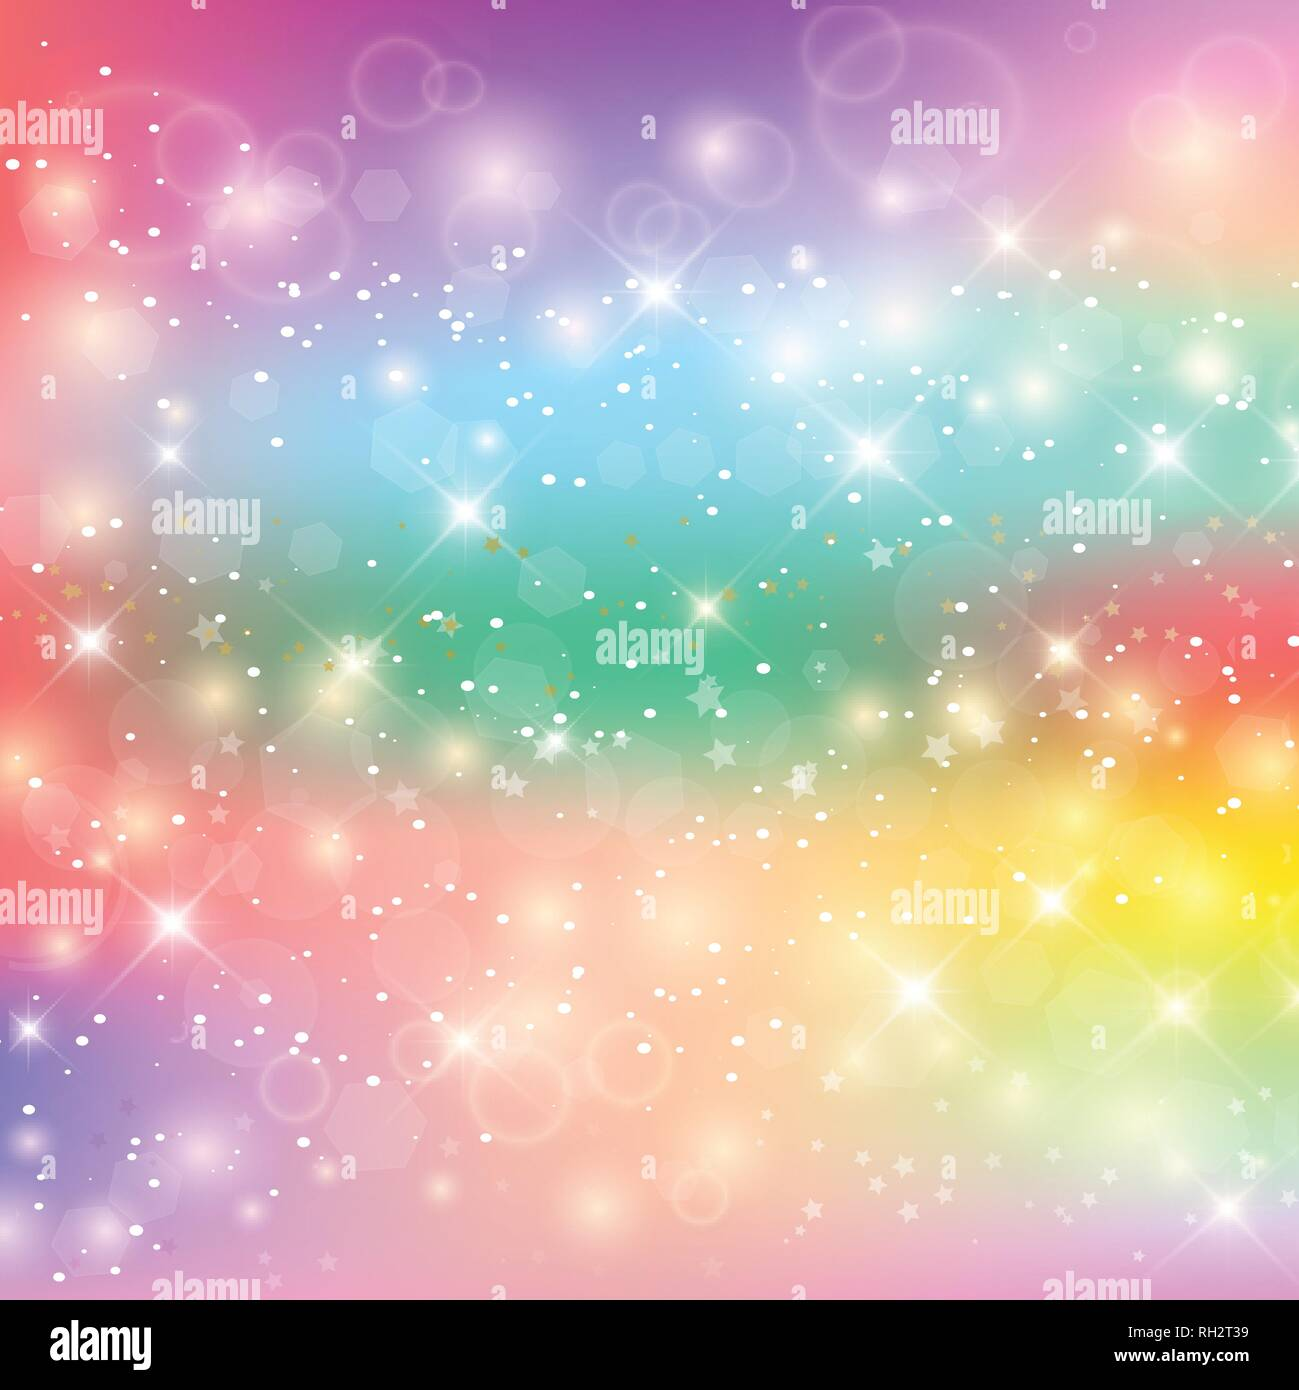 Unicorn Rainbow Background. Holographic Sky In Pastel Color. Bright Mermaid Pattern In Princess Colors. Vector Illustration. Fantasy Gradient Colorful - Stock Vector